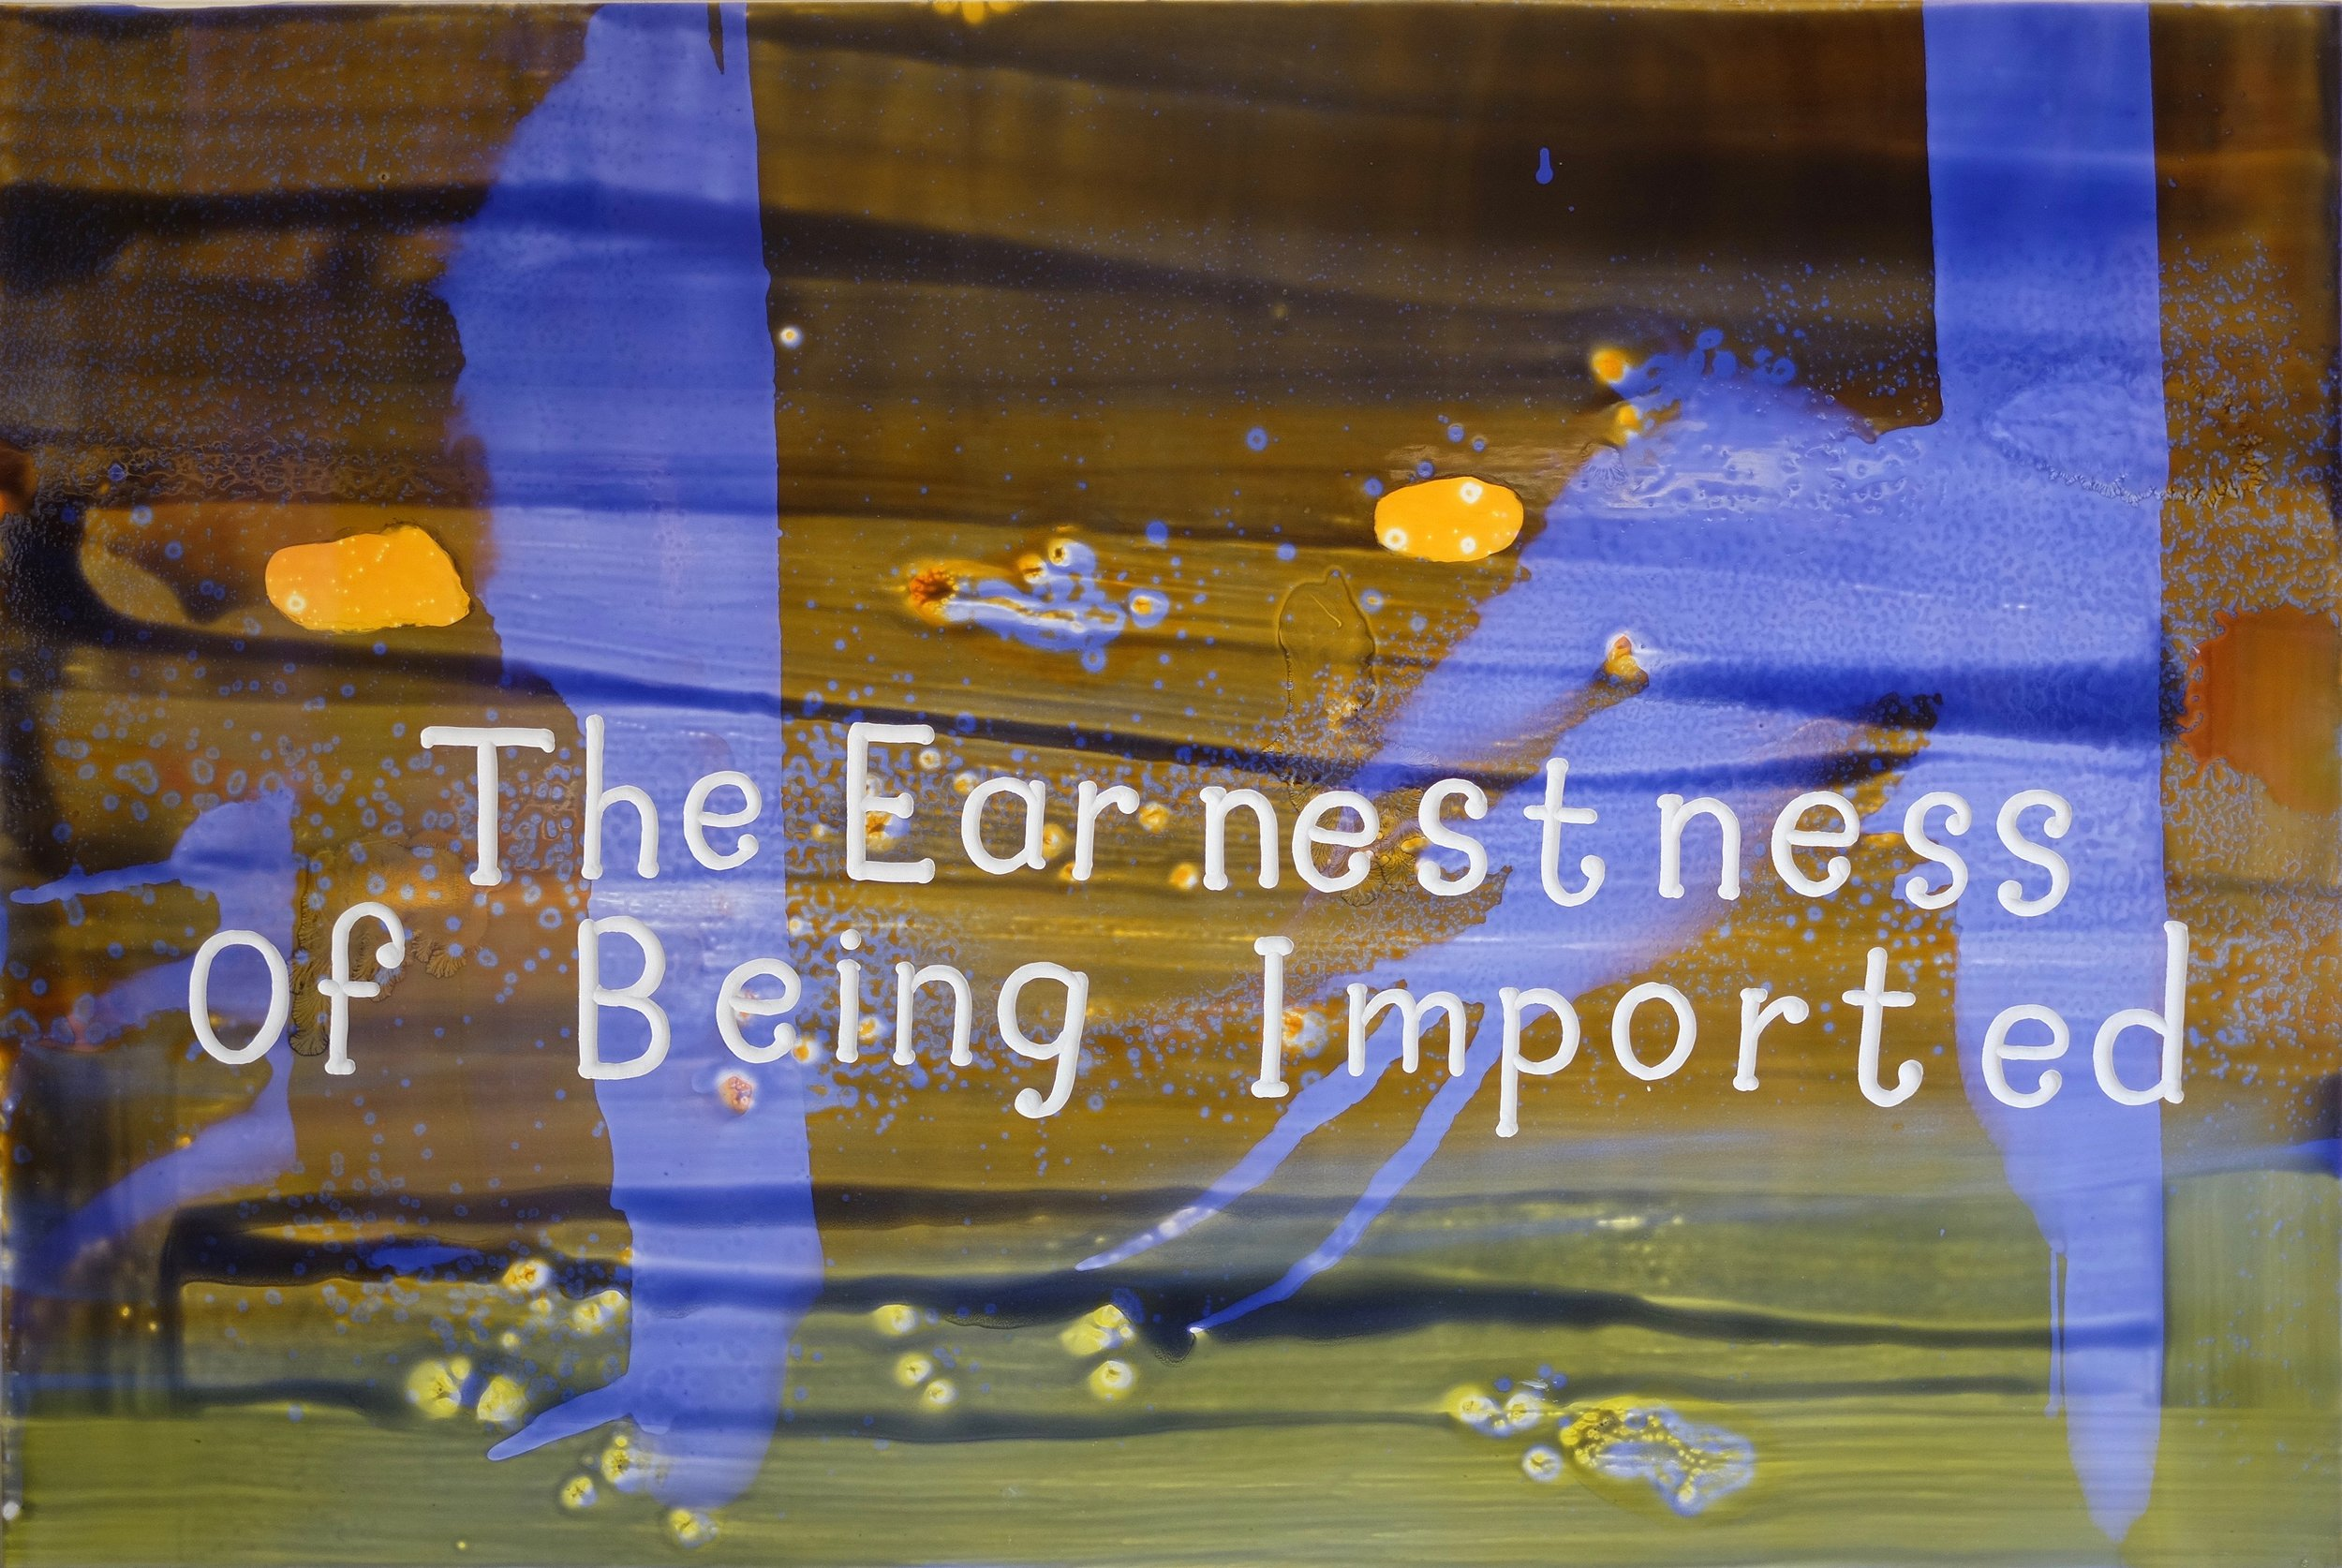 Graham Gillmore, The Earnestness Of Being Imported, 2017, acrylic on wood, 60h x 80w in.